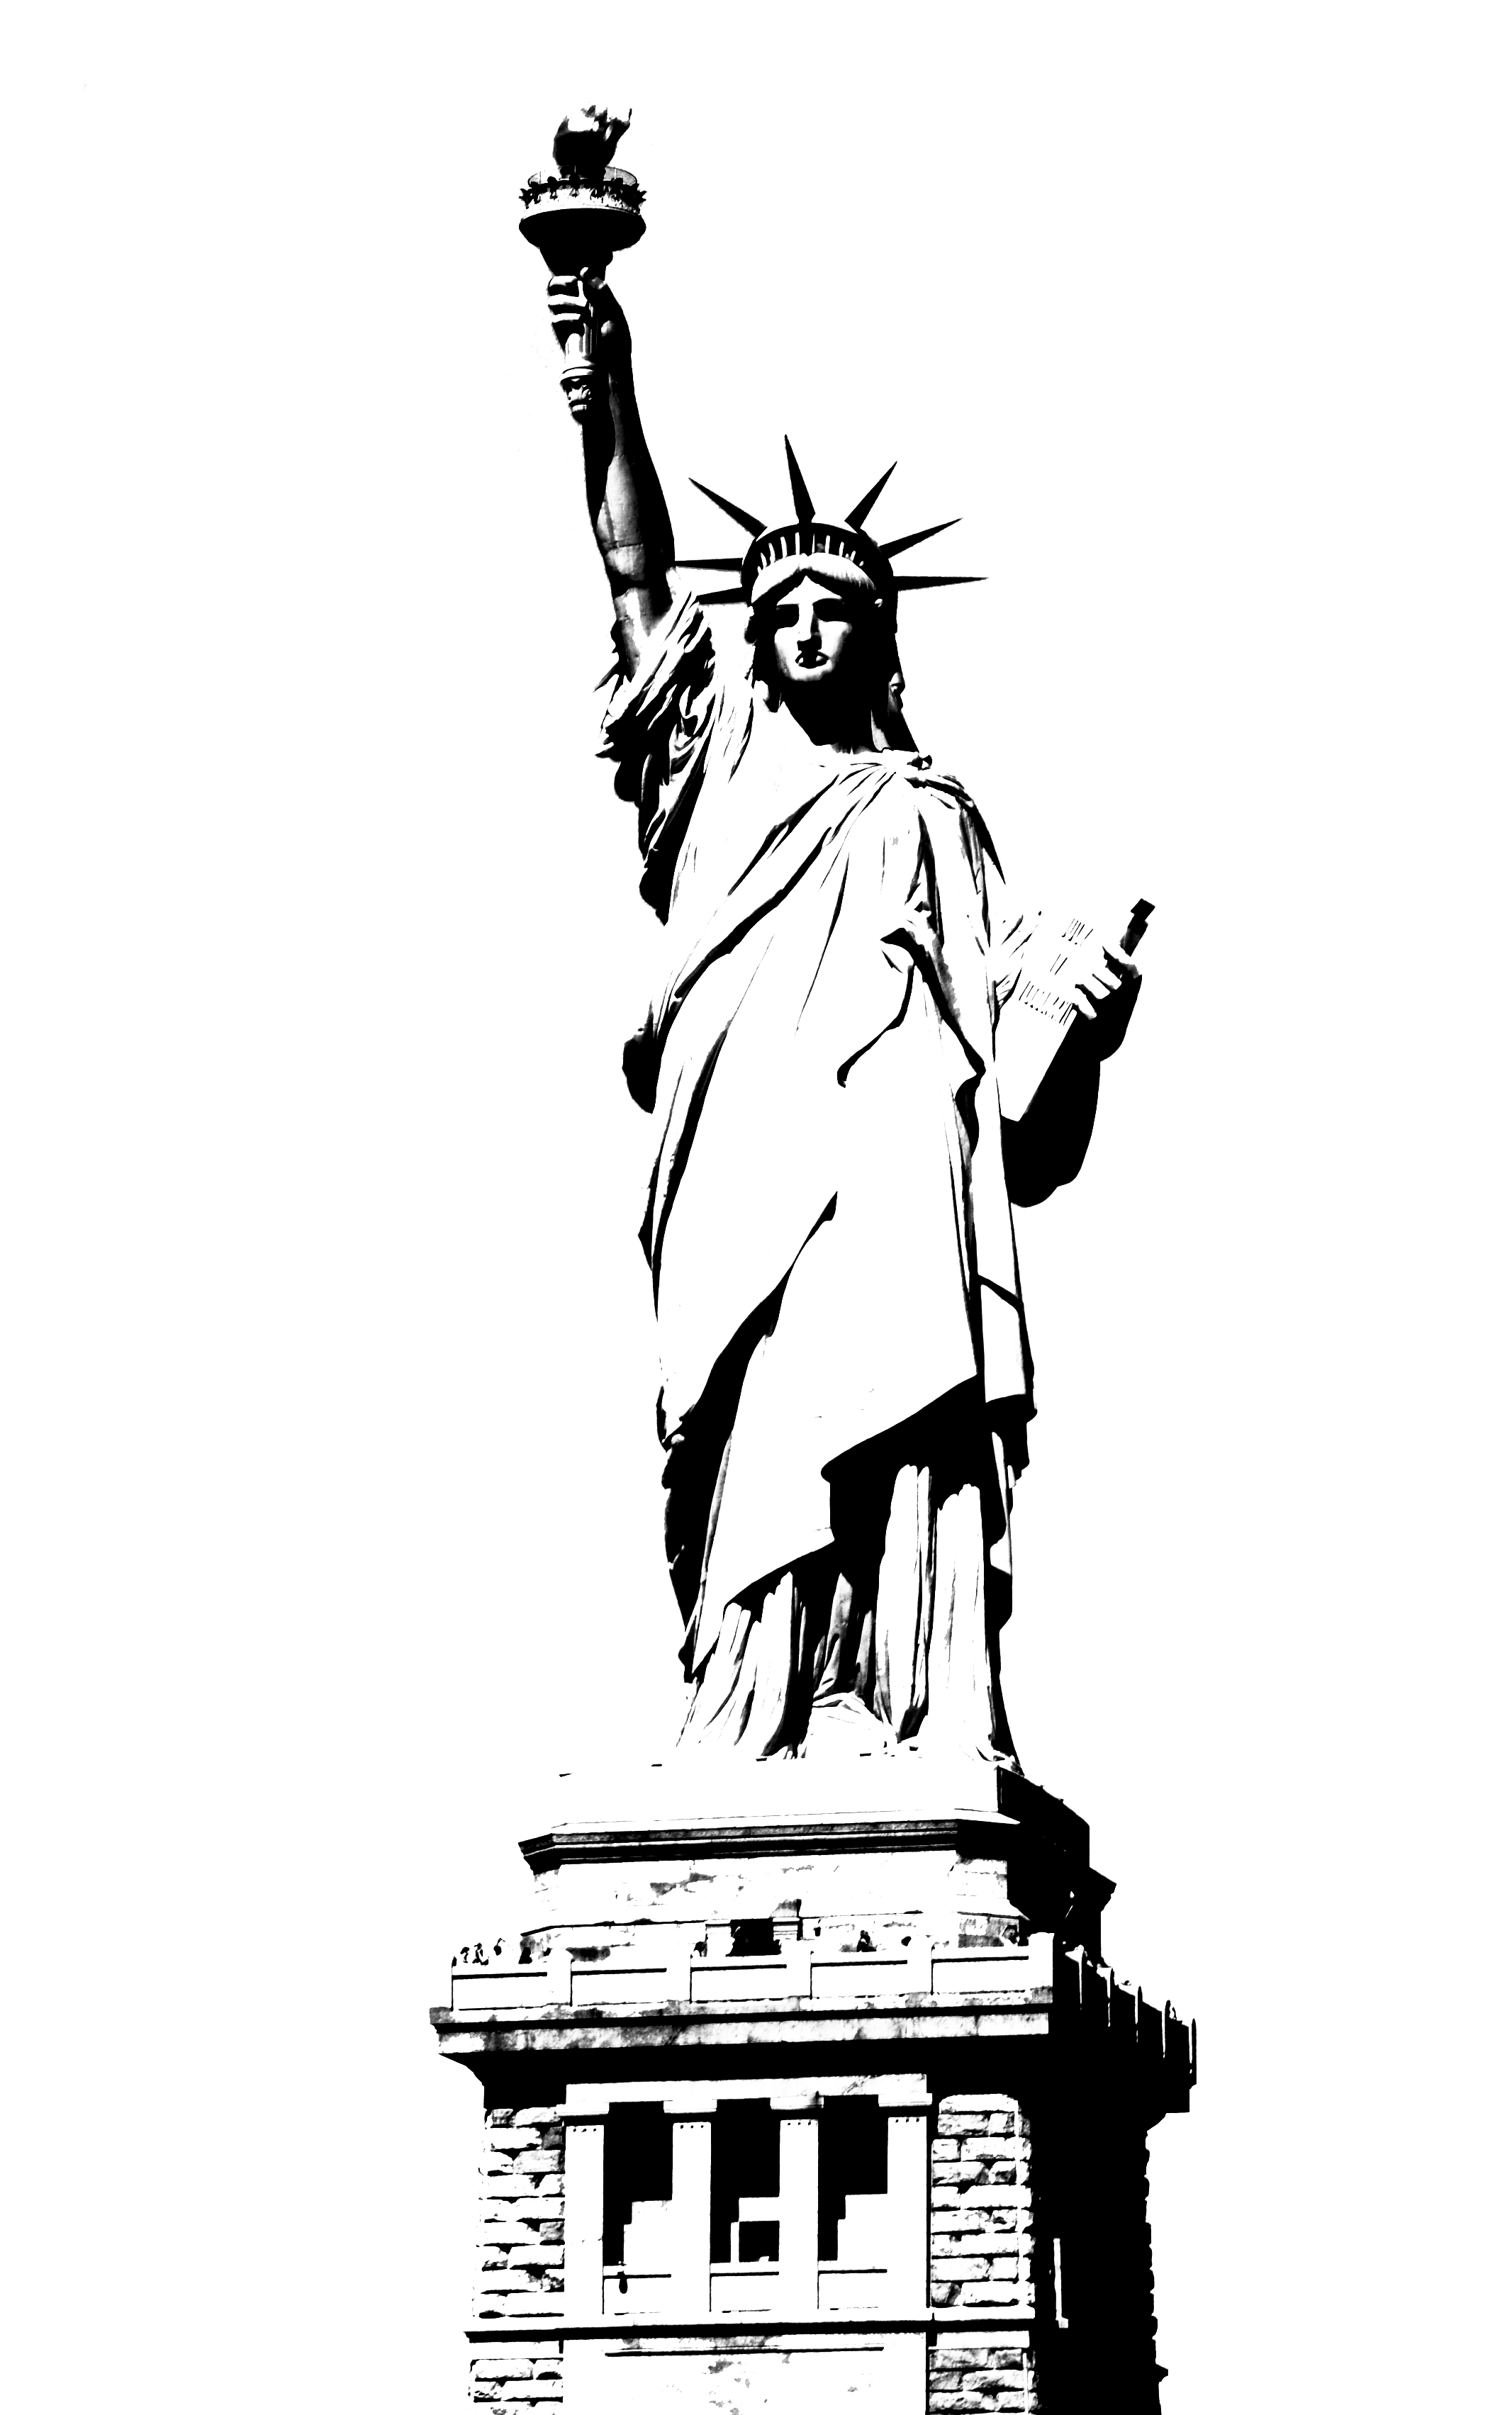 statue of liberty sketch statue of liberty drawing graphite pencils on white of liberty sketch statue